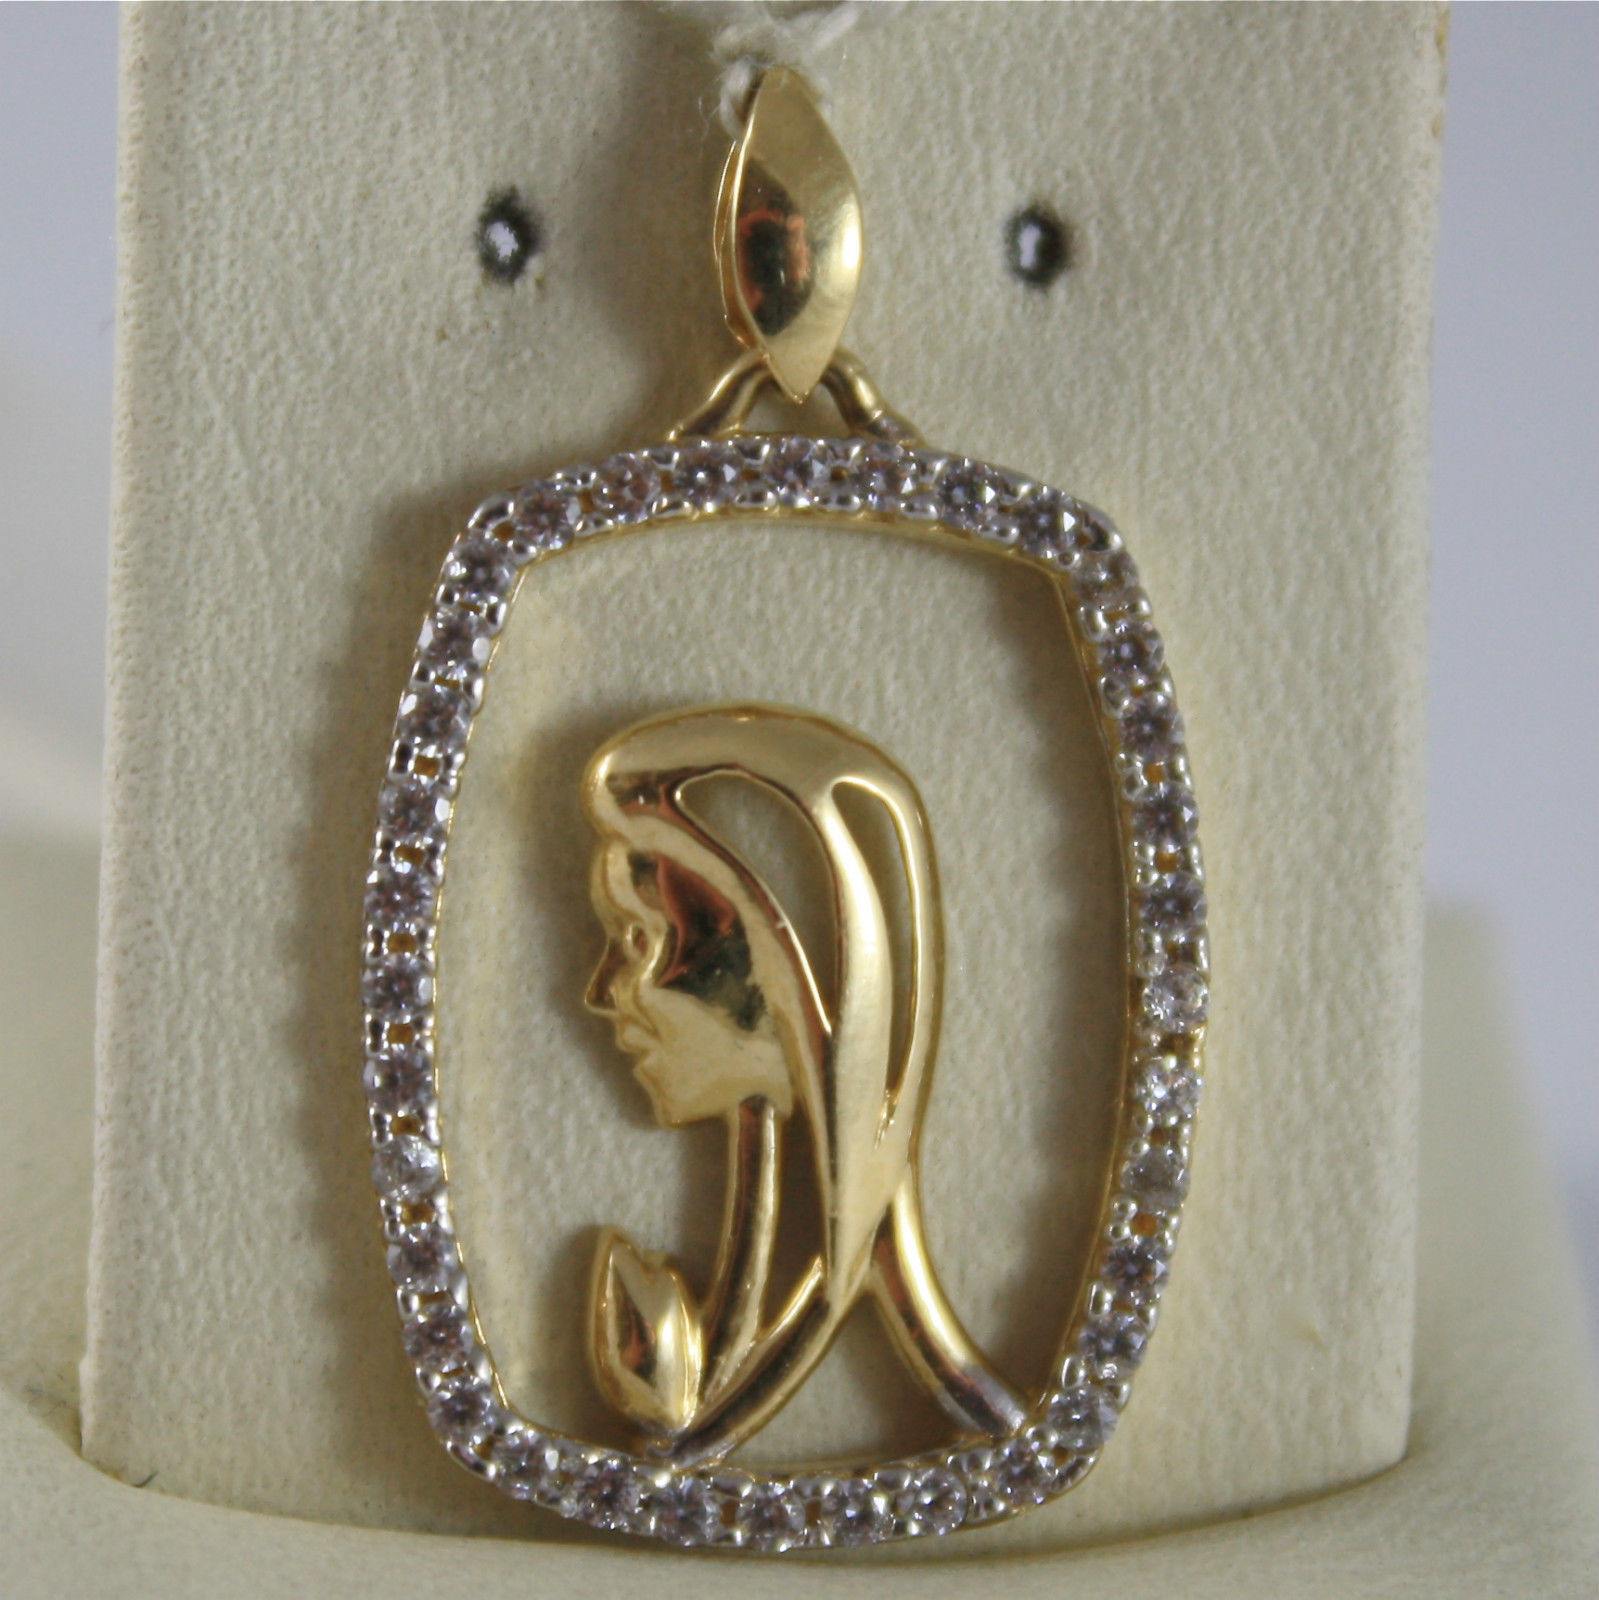 SOLID 18K WHITE YELLOW GOLD MEDAL VIRGIN MARY MADONNA, MARIA, MADE IN ITALY